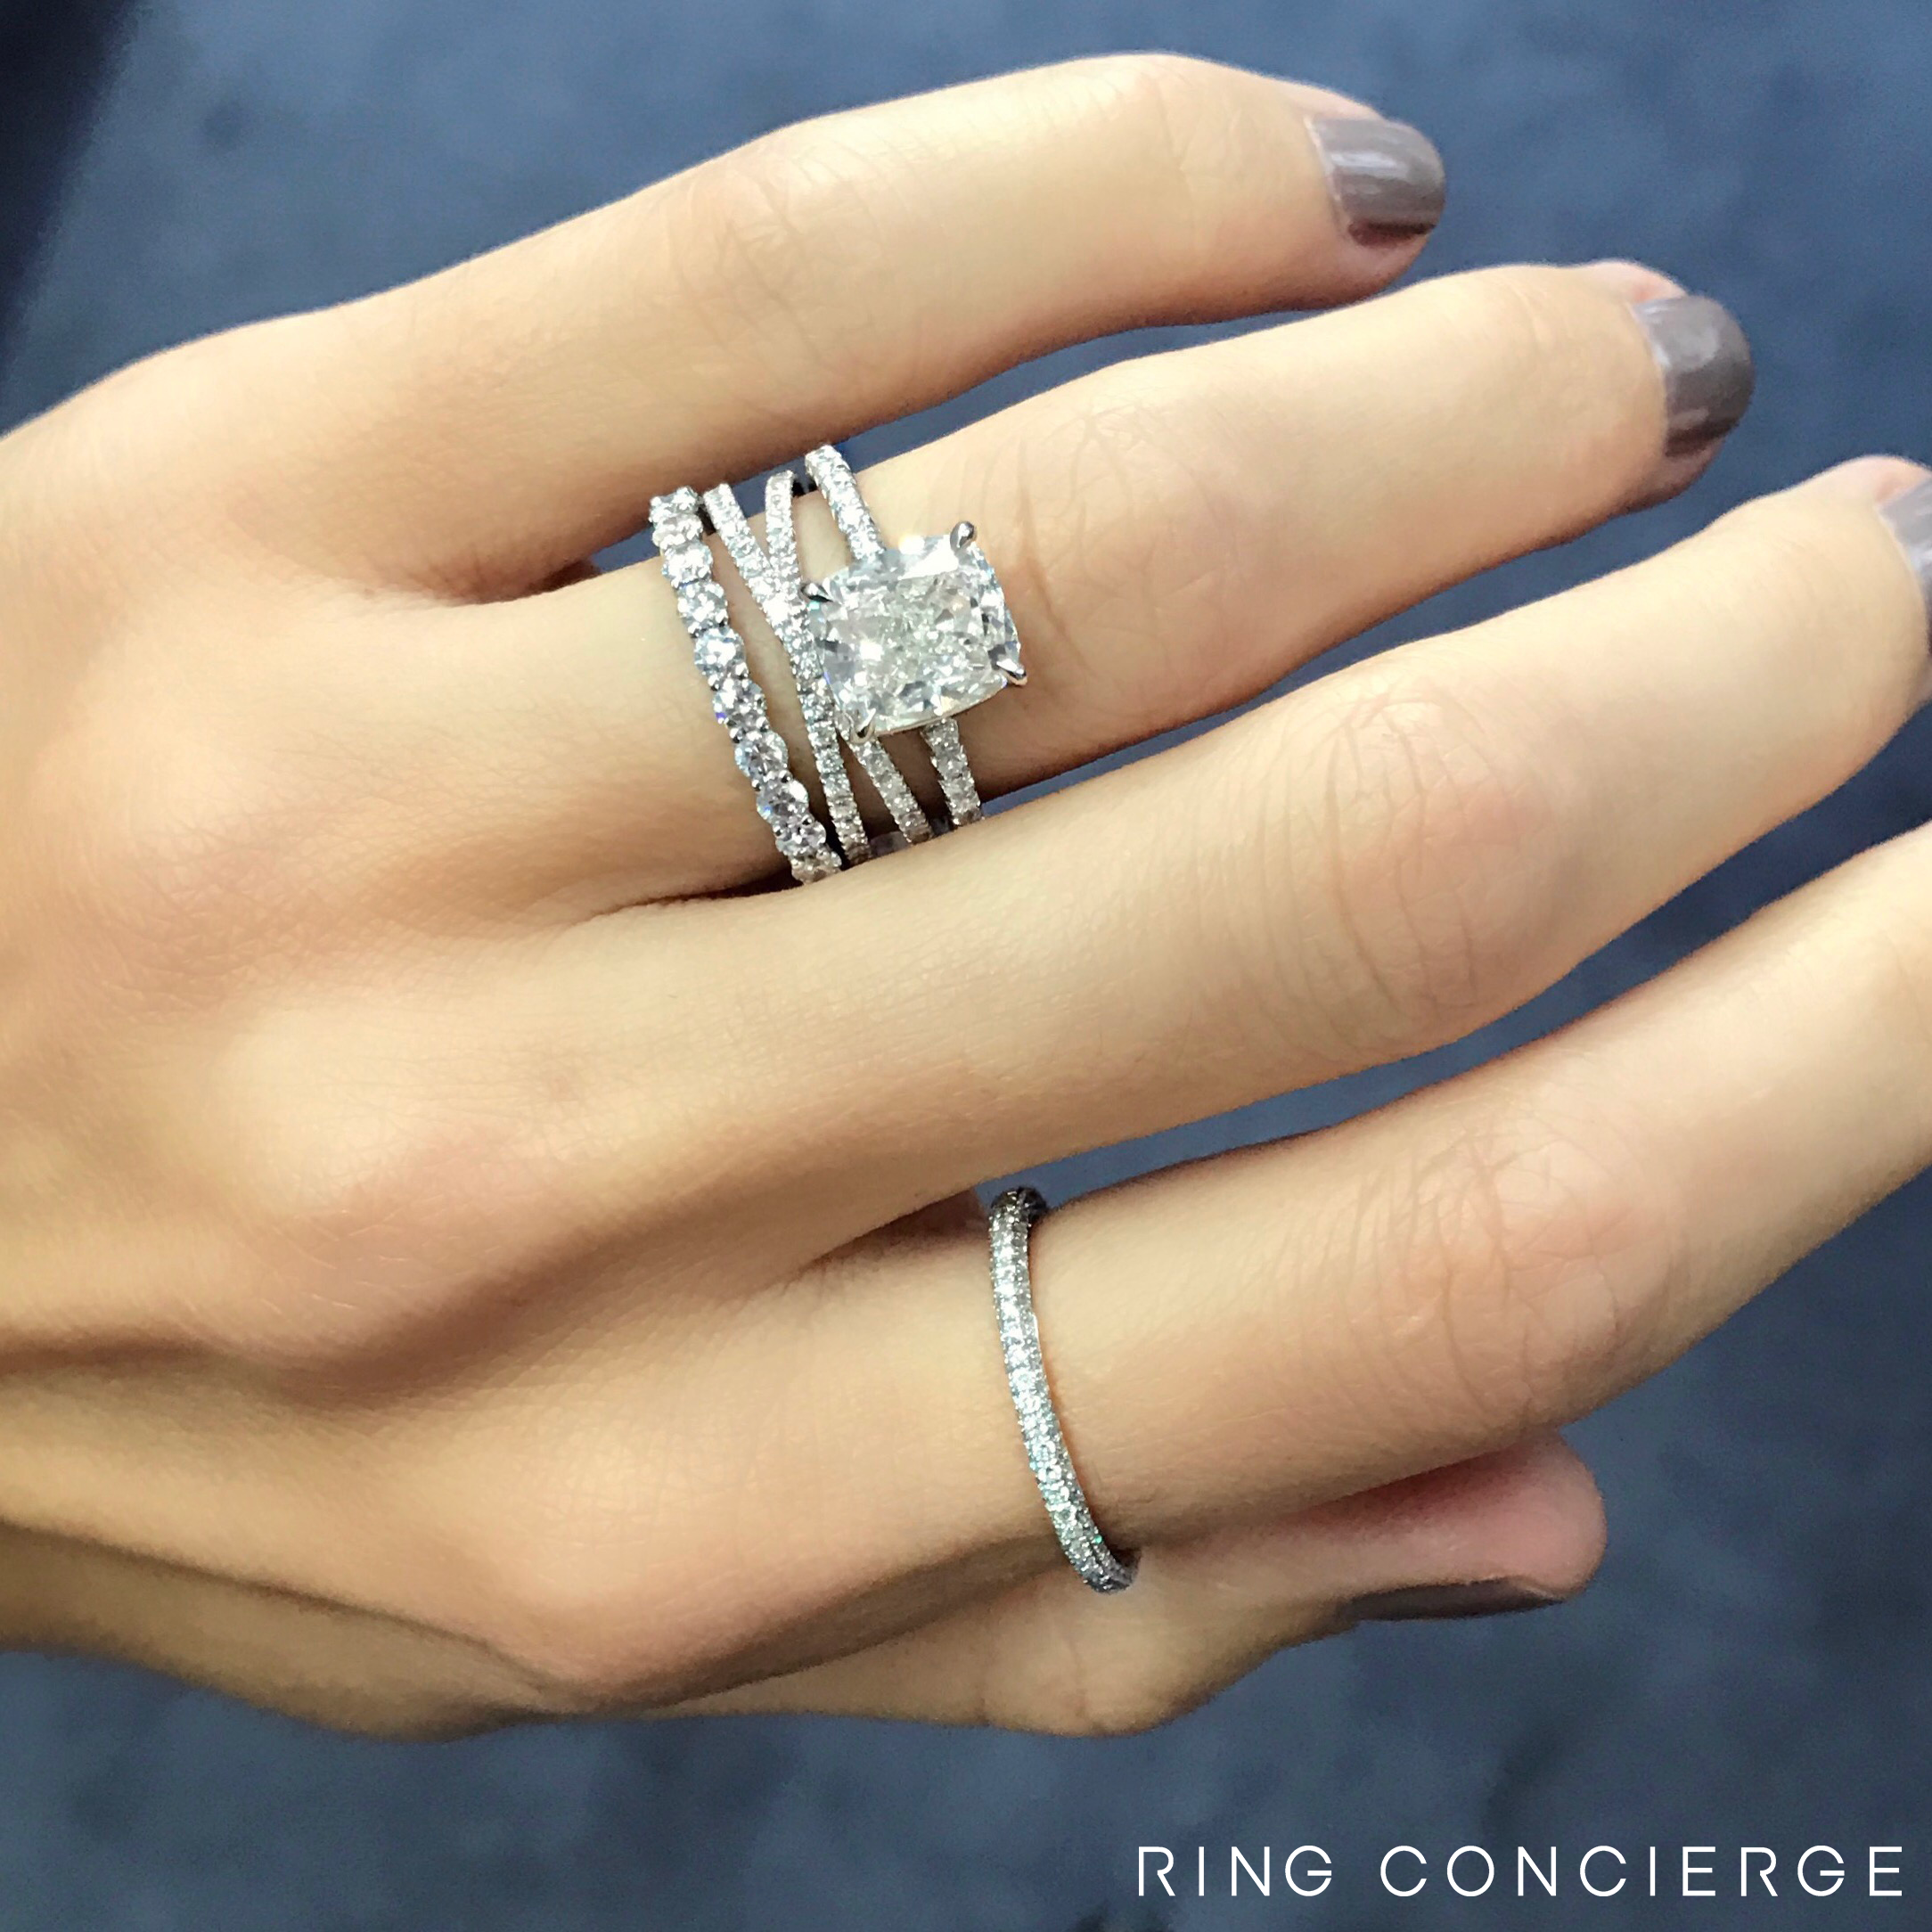 3ct Cushion Paired With A Crisscross Wedding Band And A Round